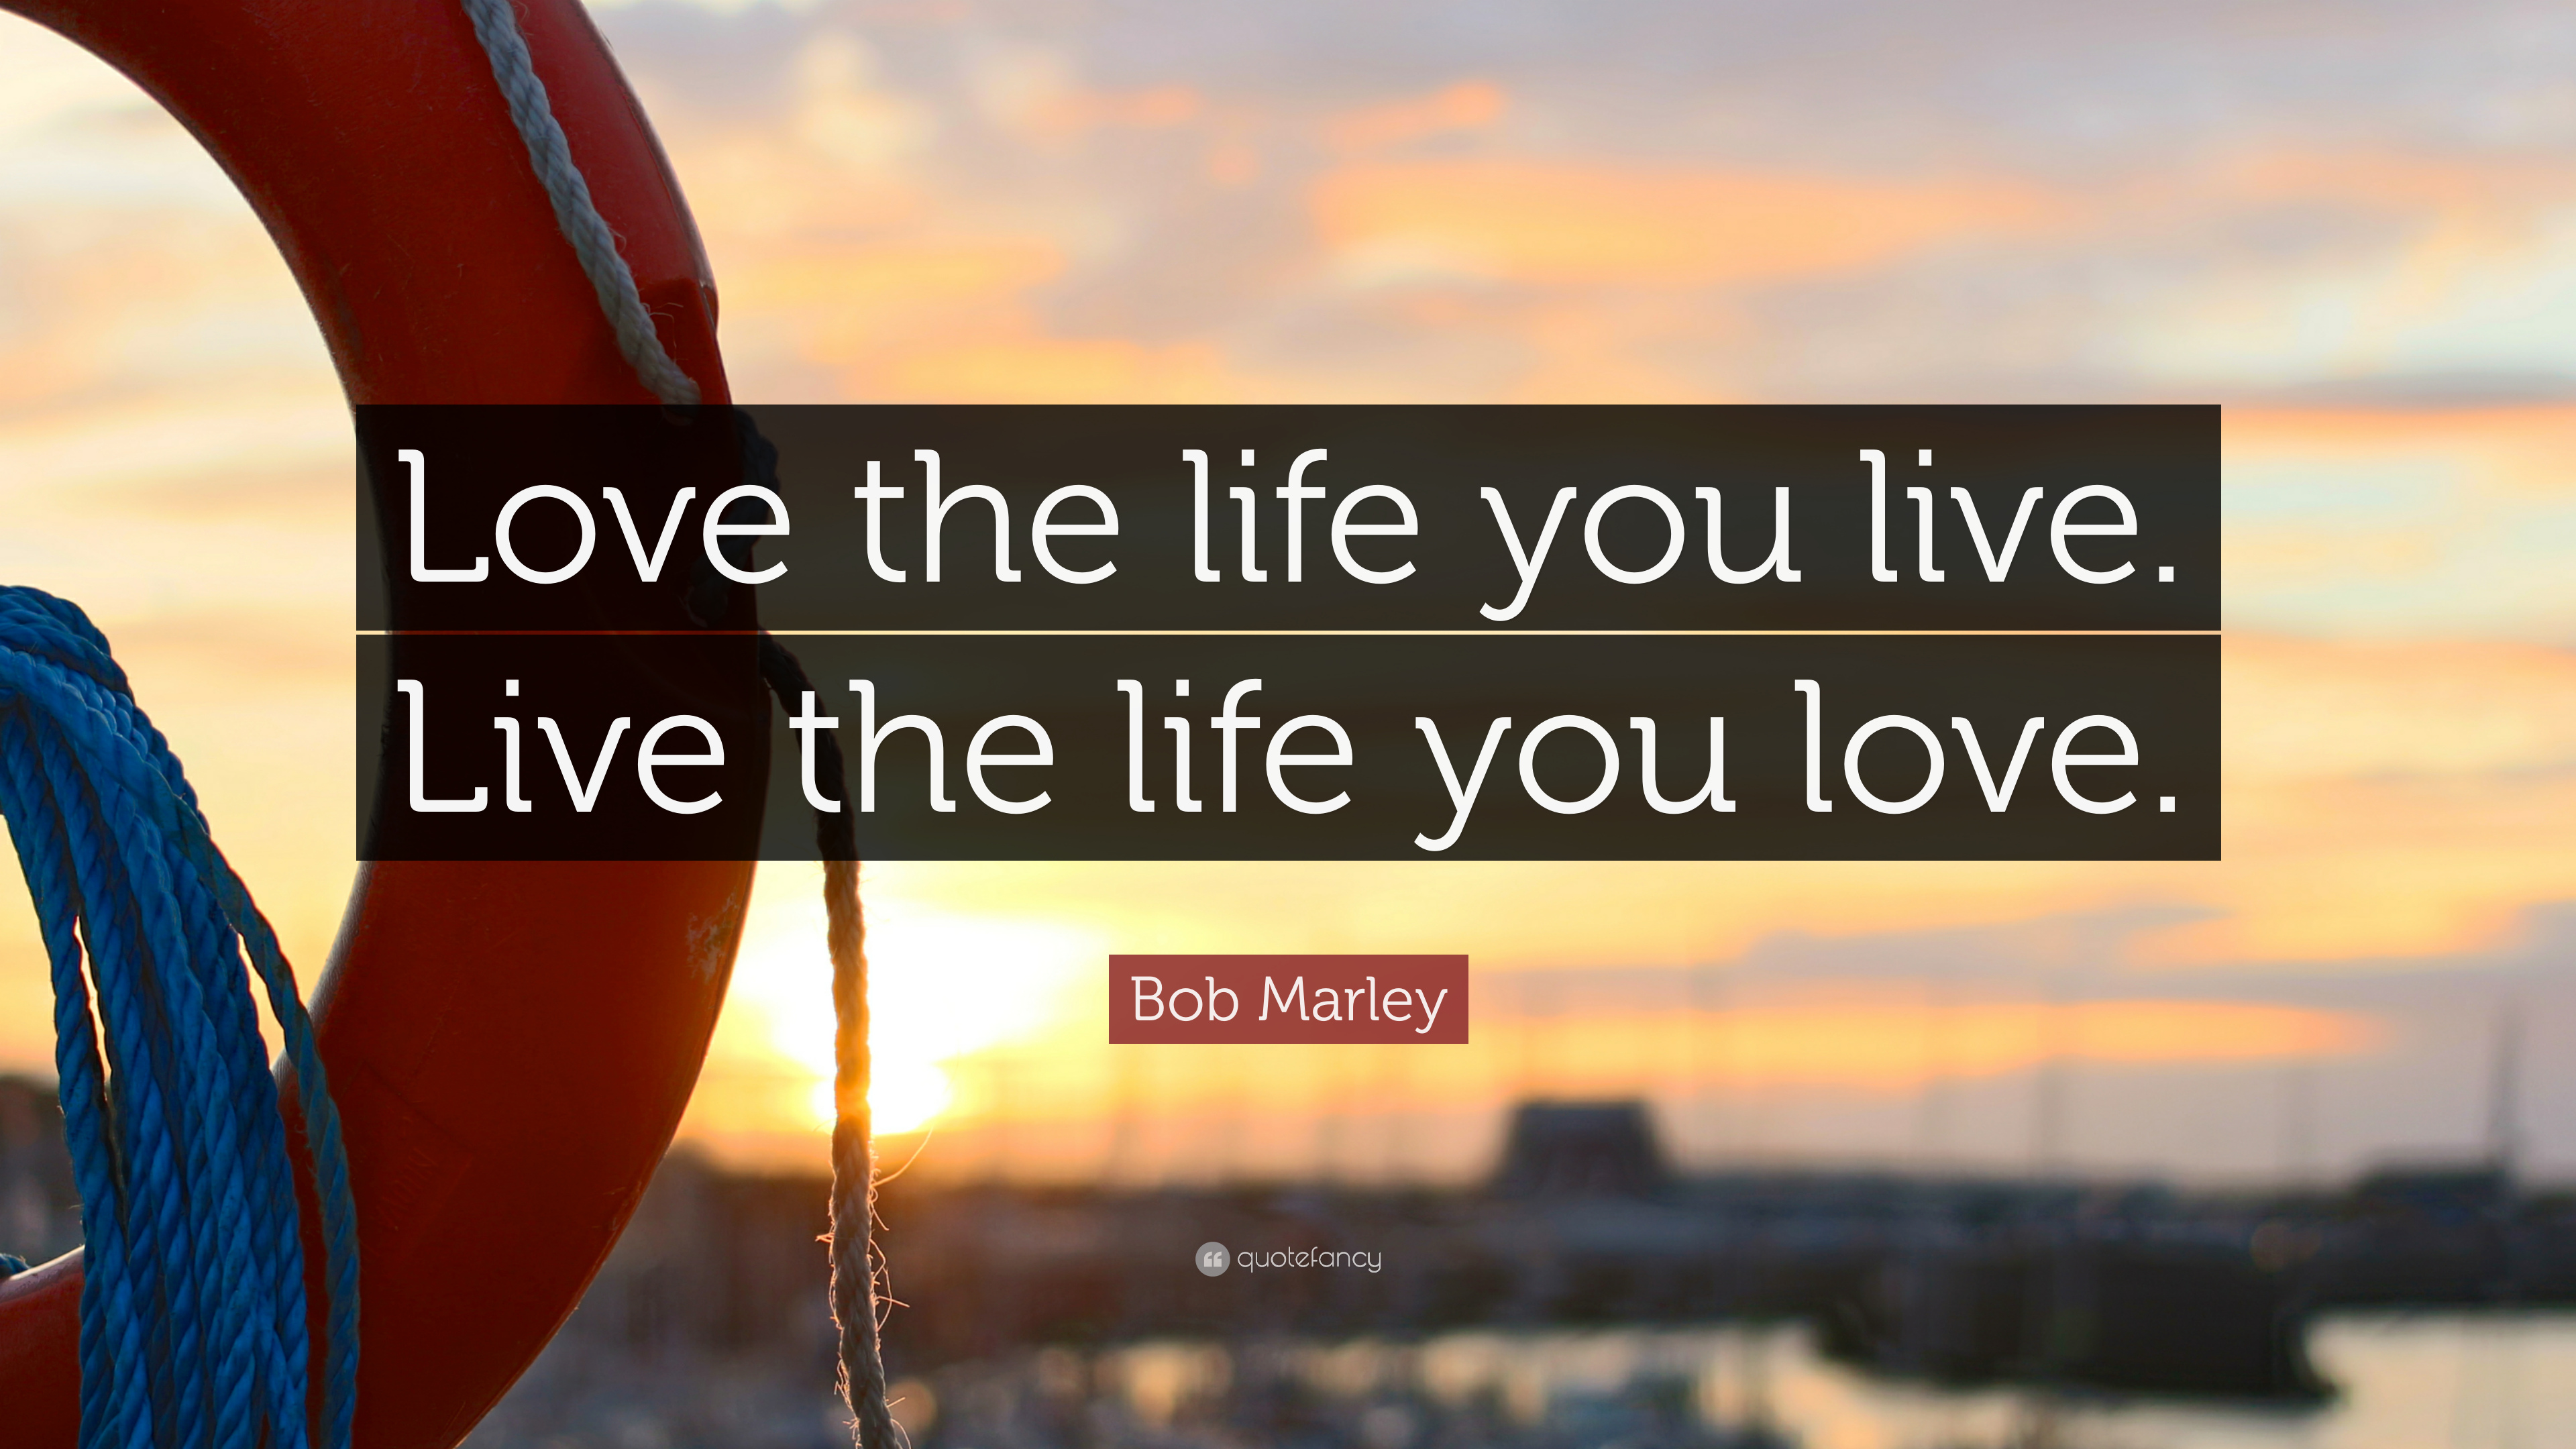 Mother Teresa Quotes Wallpapers Bob Marley Quote Love The Life You Live Live The Life